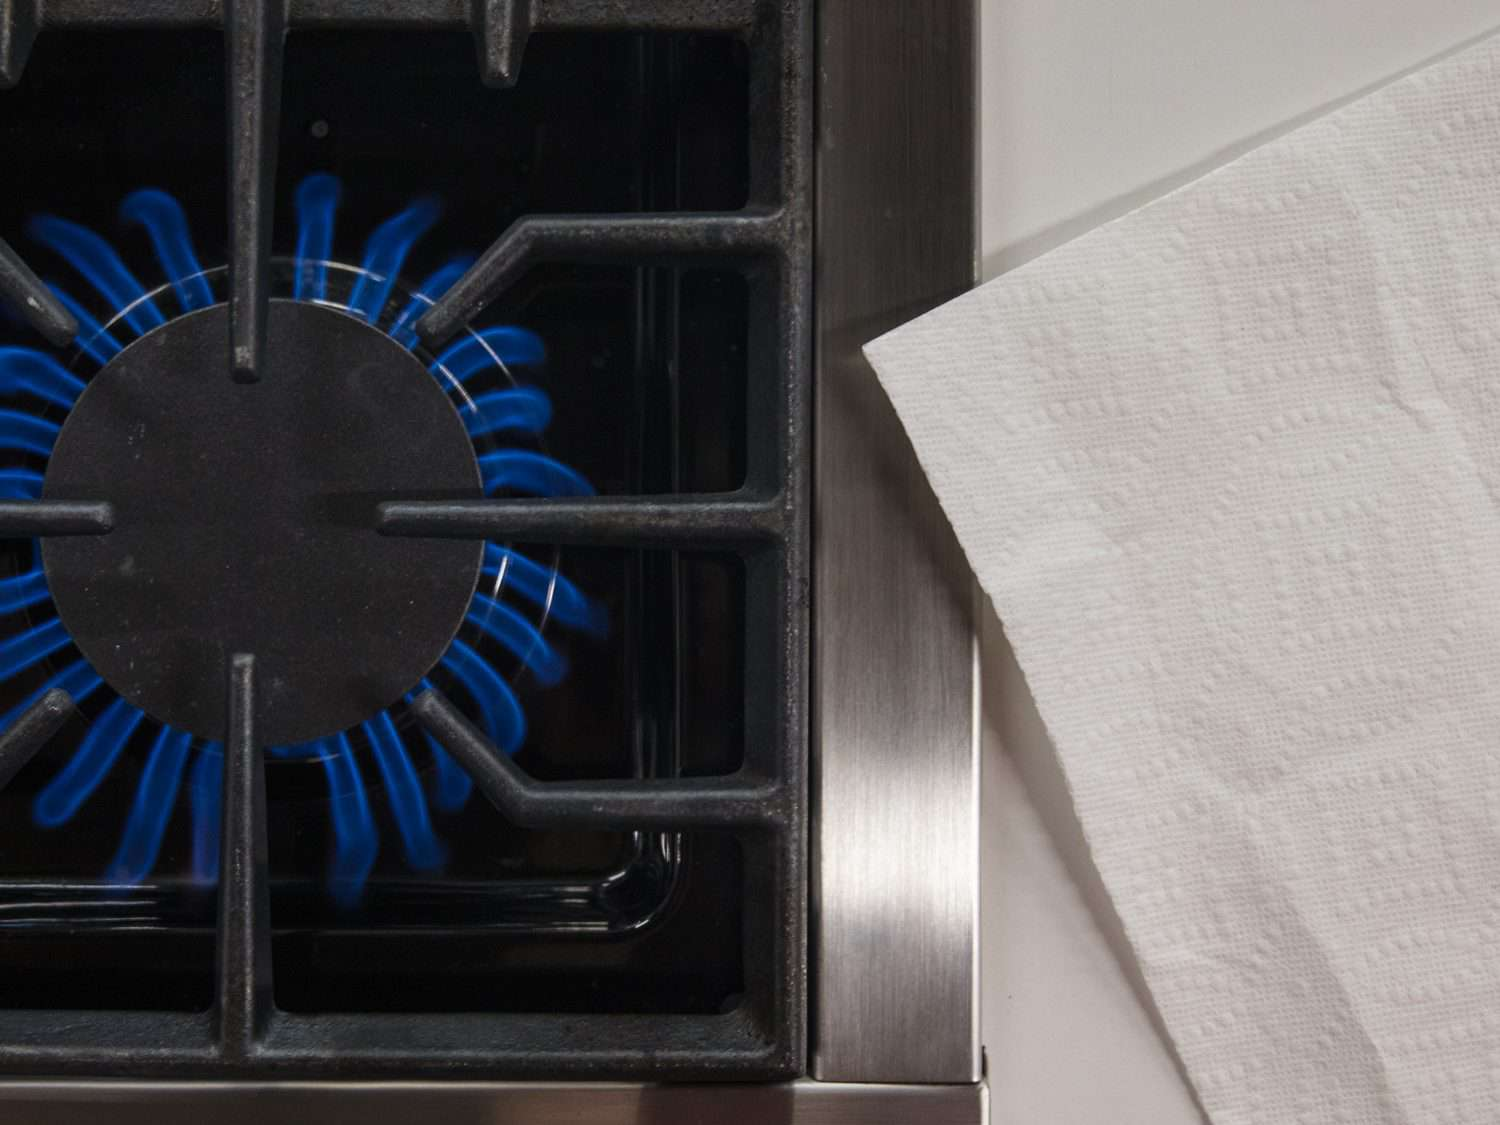 A paper towel that's too close to a kitchen burner flame: dangerous